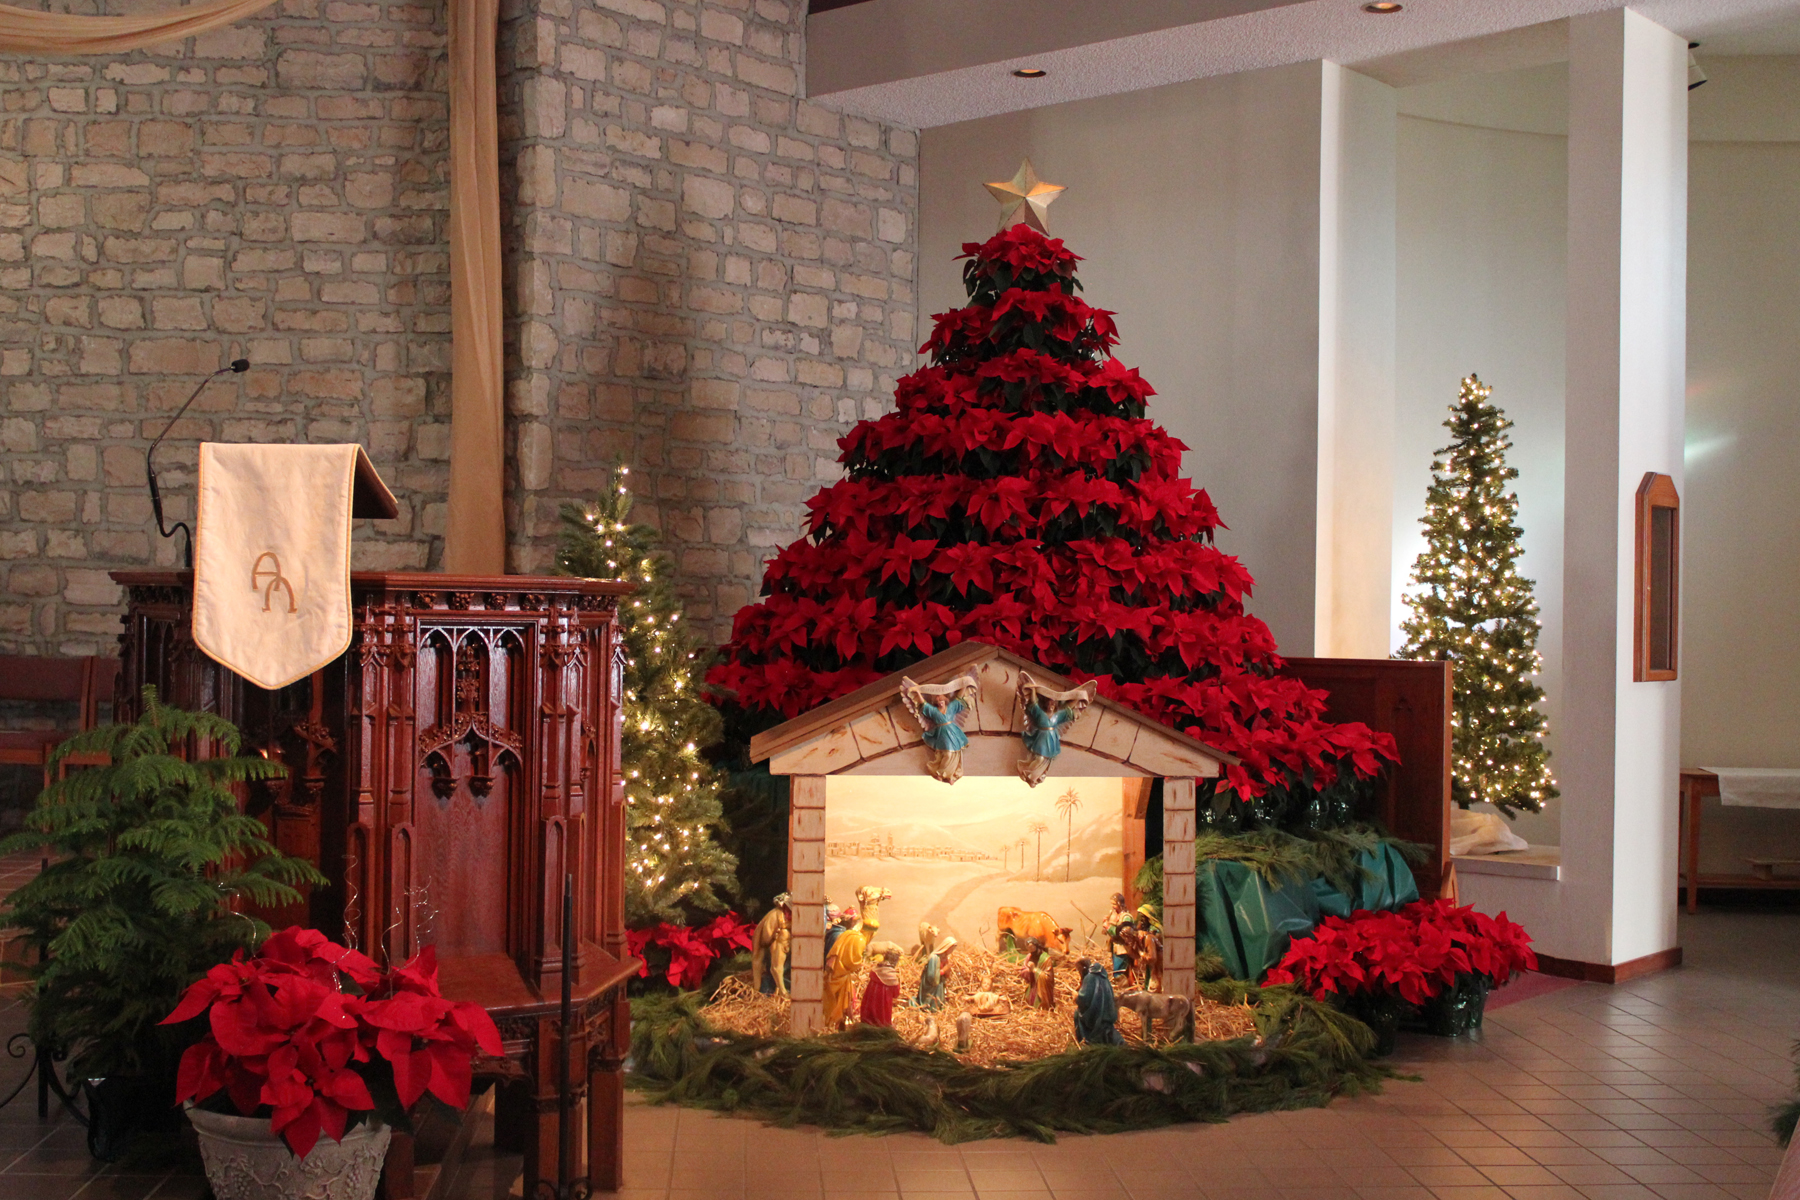 nativity inspired classic decor - Christmas Decorating Ideas For Church Sanctuary